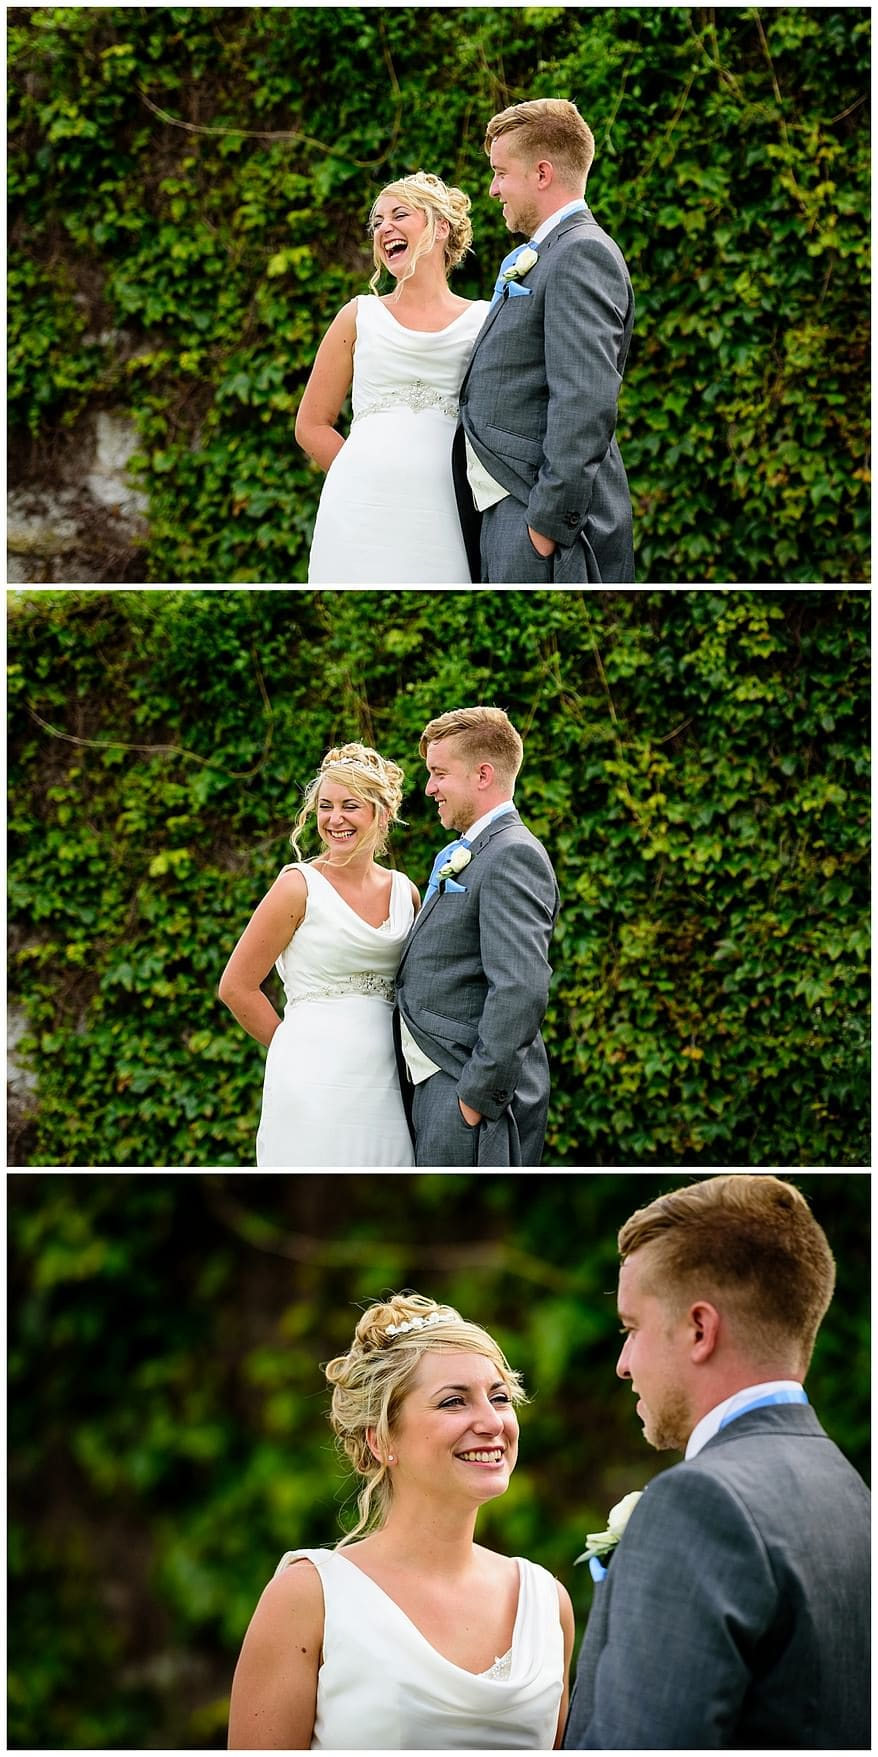 bride and groom at the gardens next to the greenbank hotel